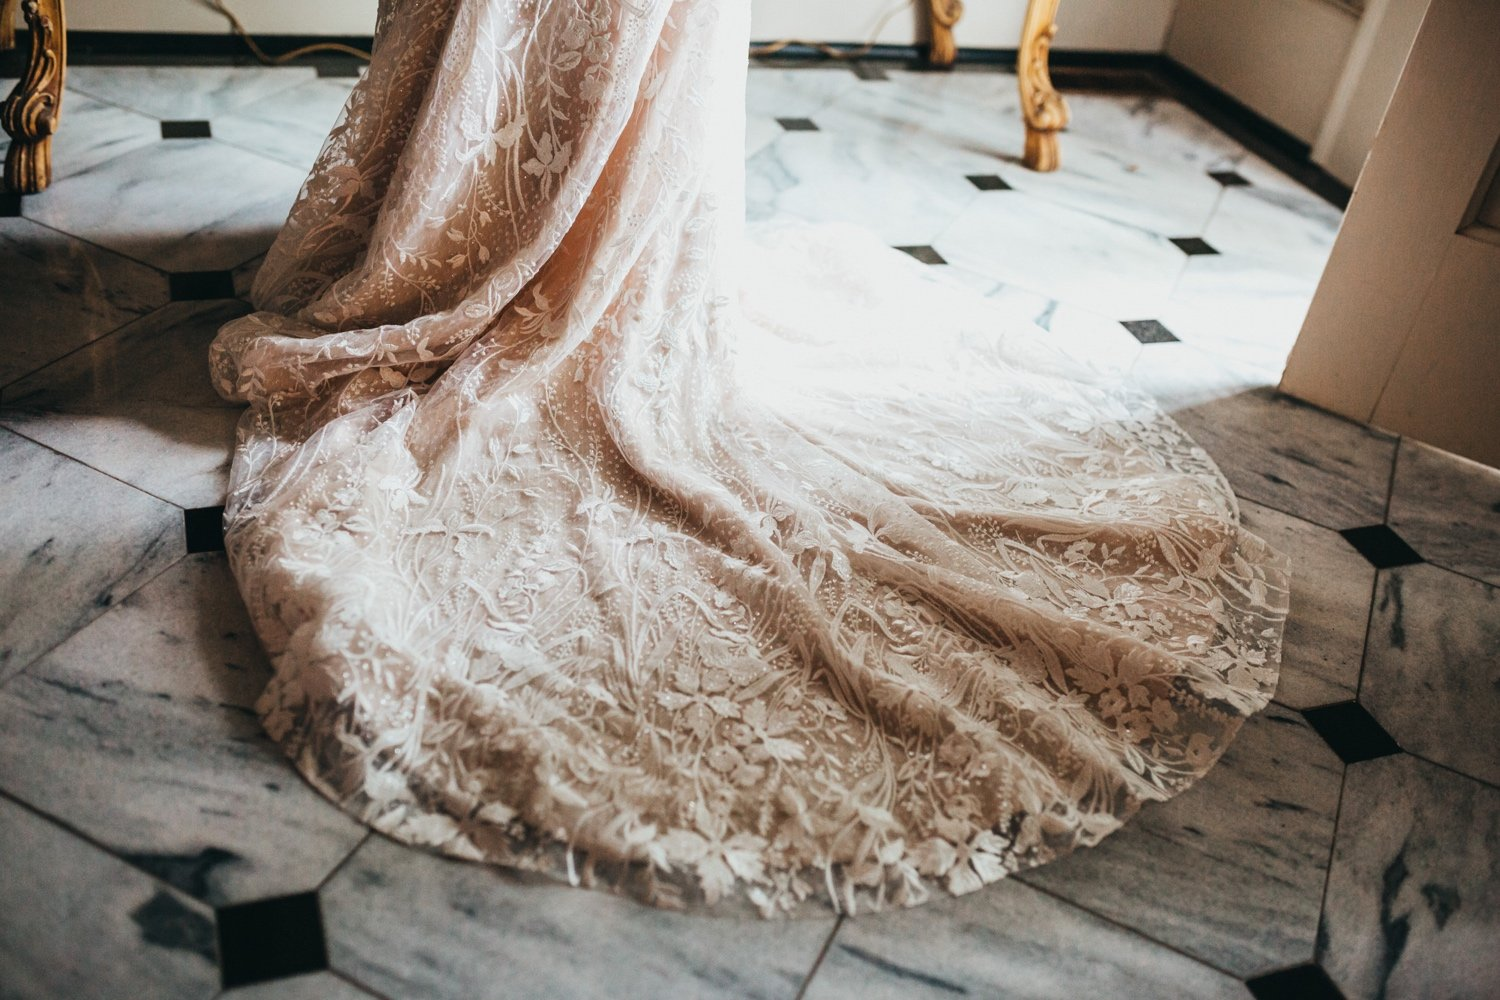 beautiful details on the bottom of the wedding dress fanned out in the marble tile hallway